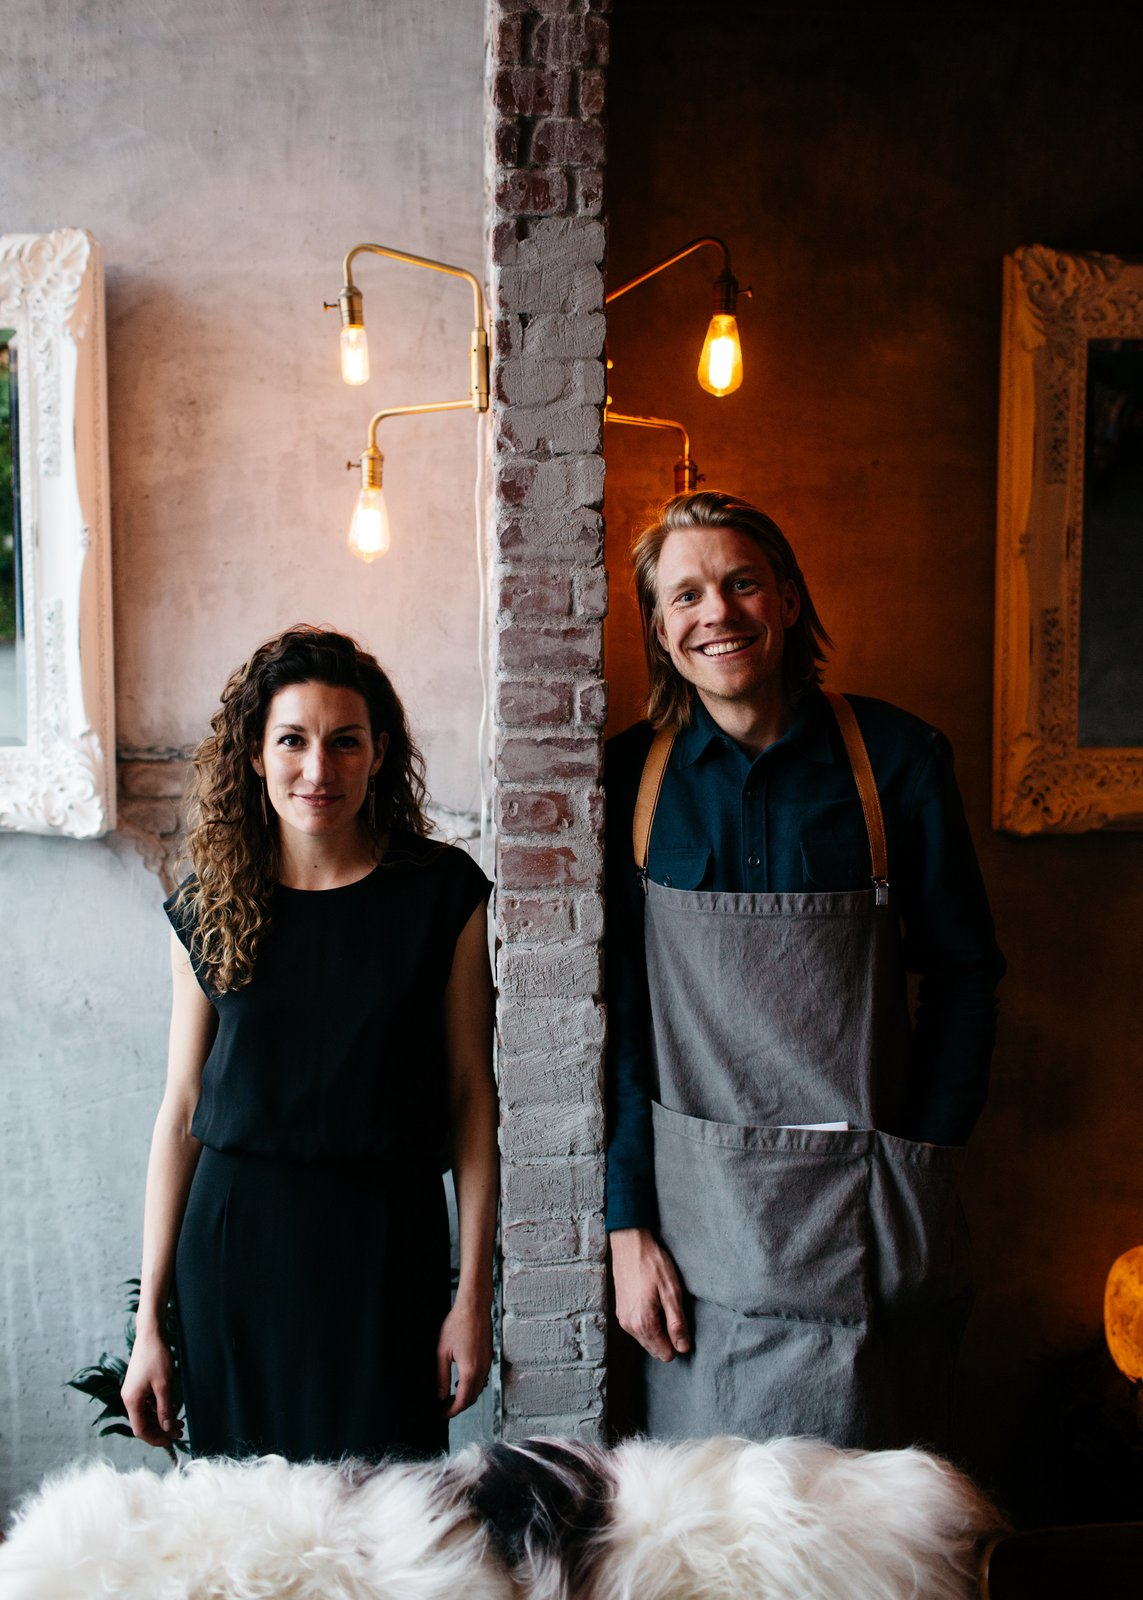 Alexandra Gove and Koen van Renswoude, co-owners of Hygge Life.  Photo 2 of 9 in 8 Ways to Master the Cozy Danish Concept of Hygge in Your Home